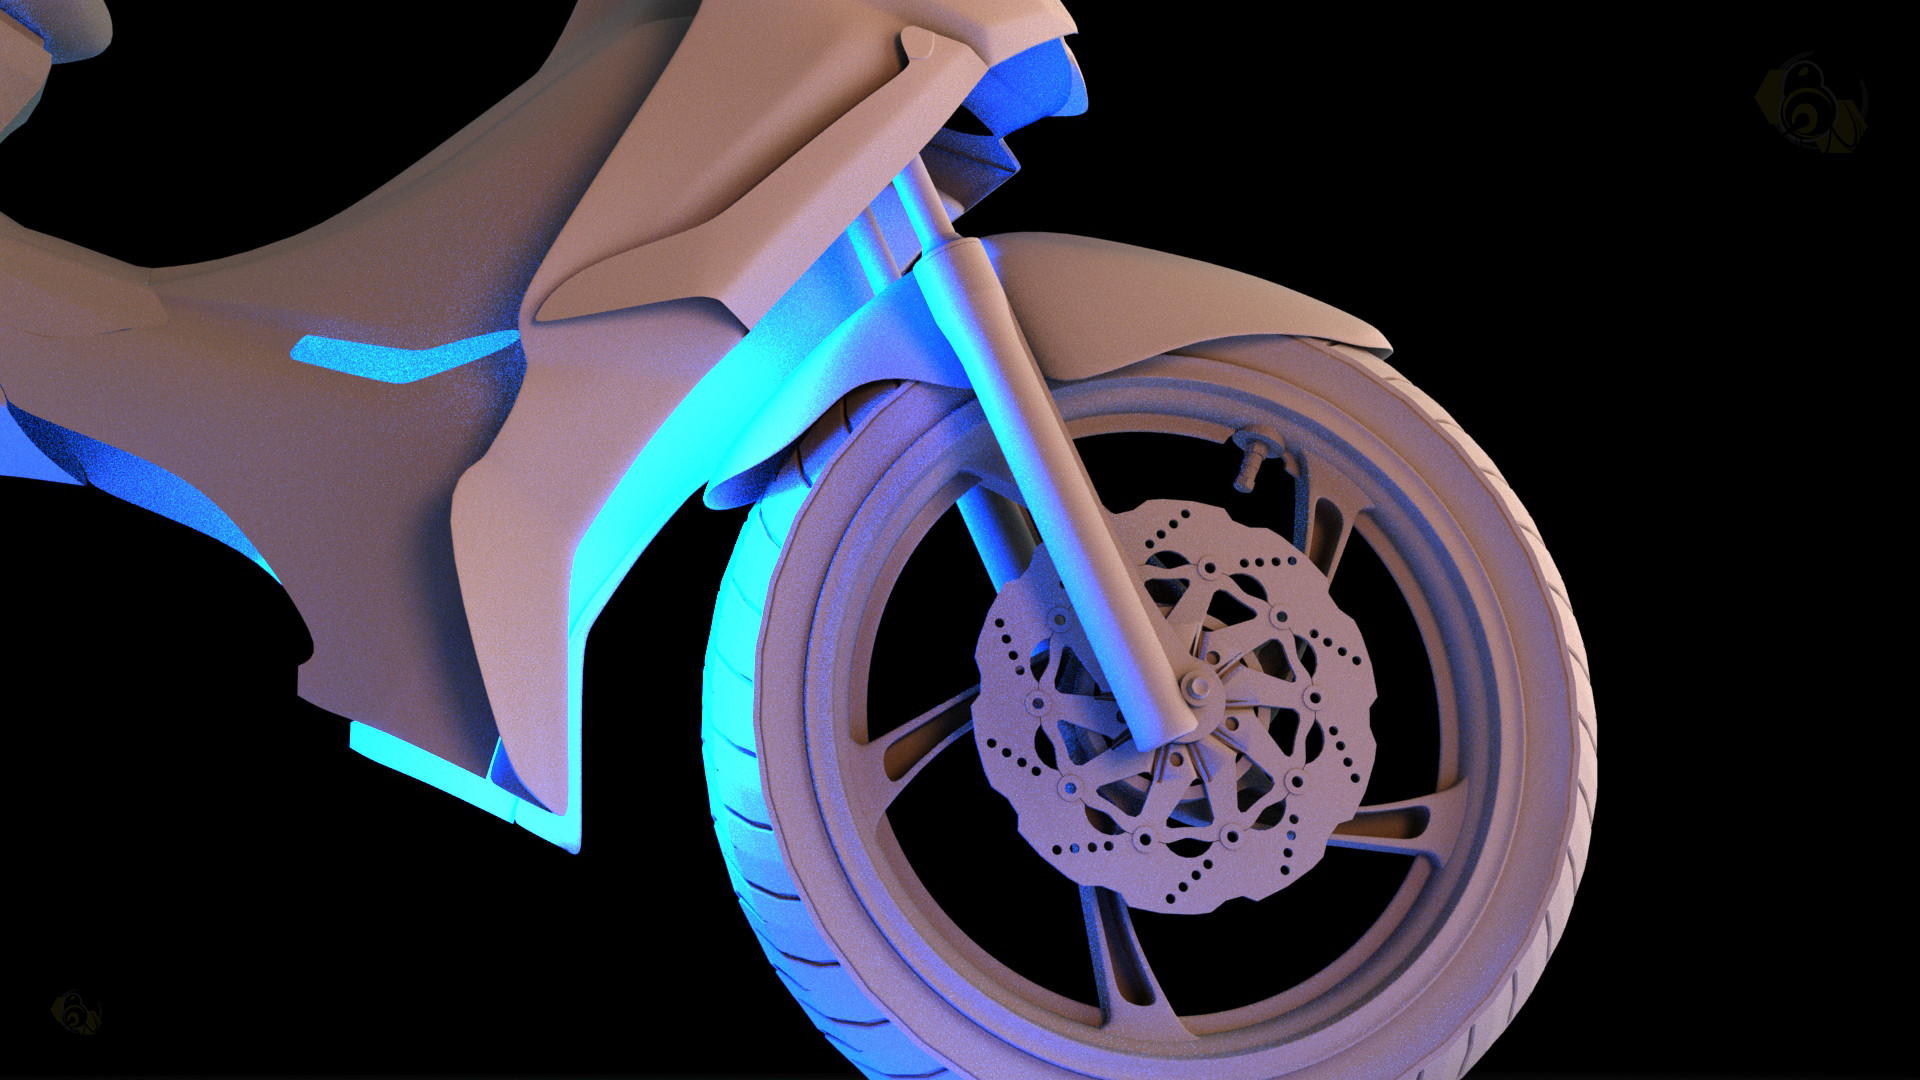 ArtStation - Motorcycle 3D Modeled And Rendered By: Enrick